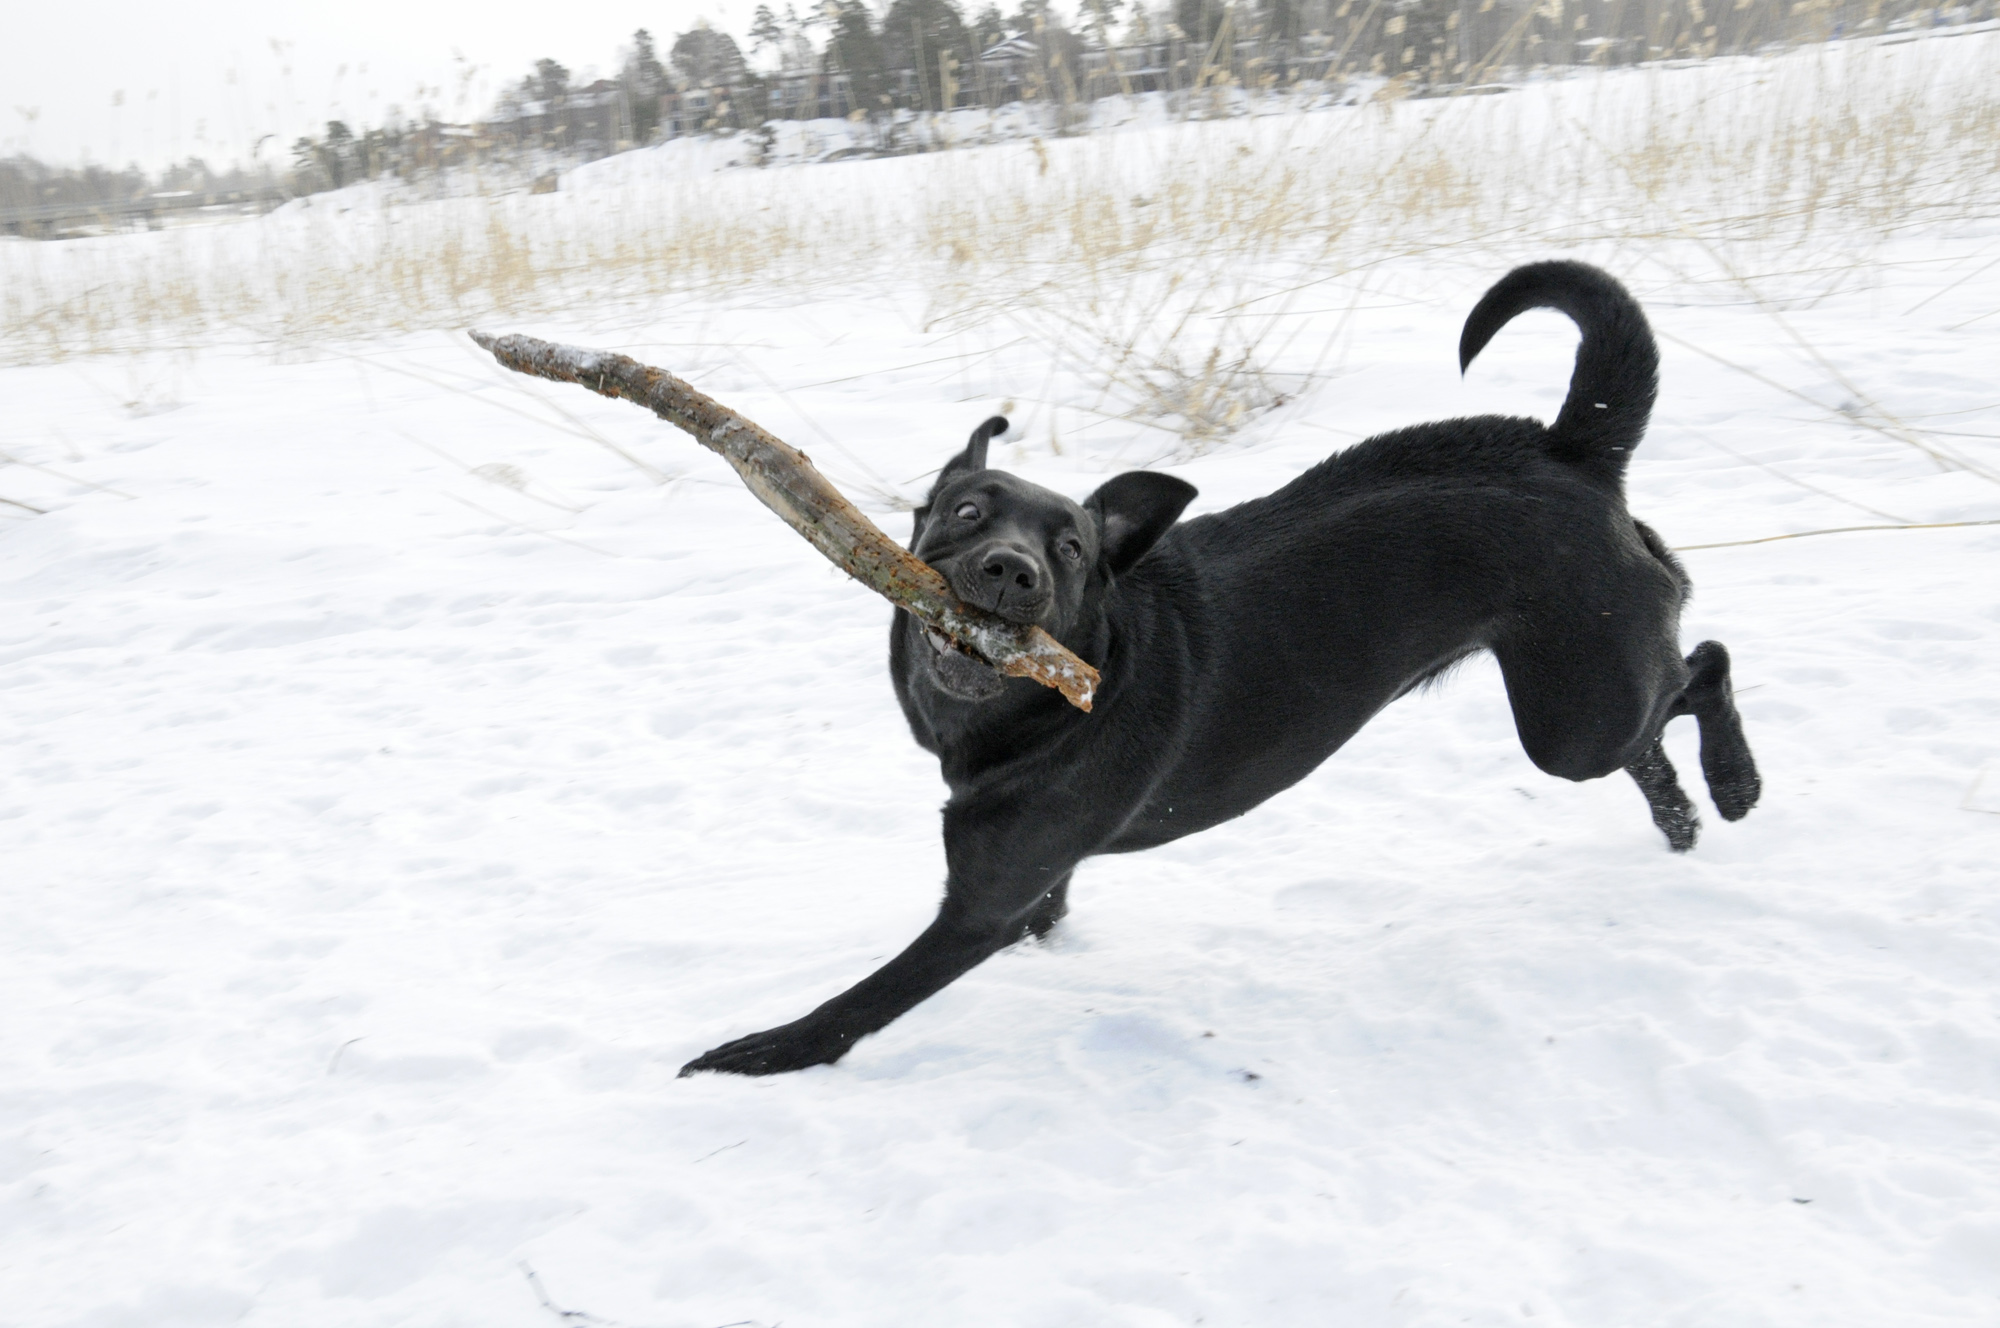 Labrador_retriever_playing_with_a_stick_in_snow